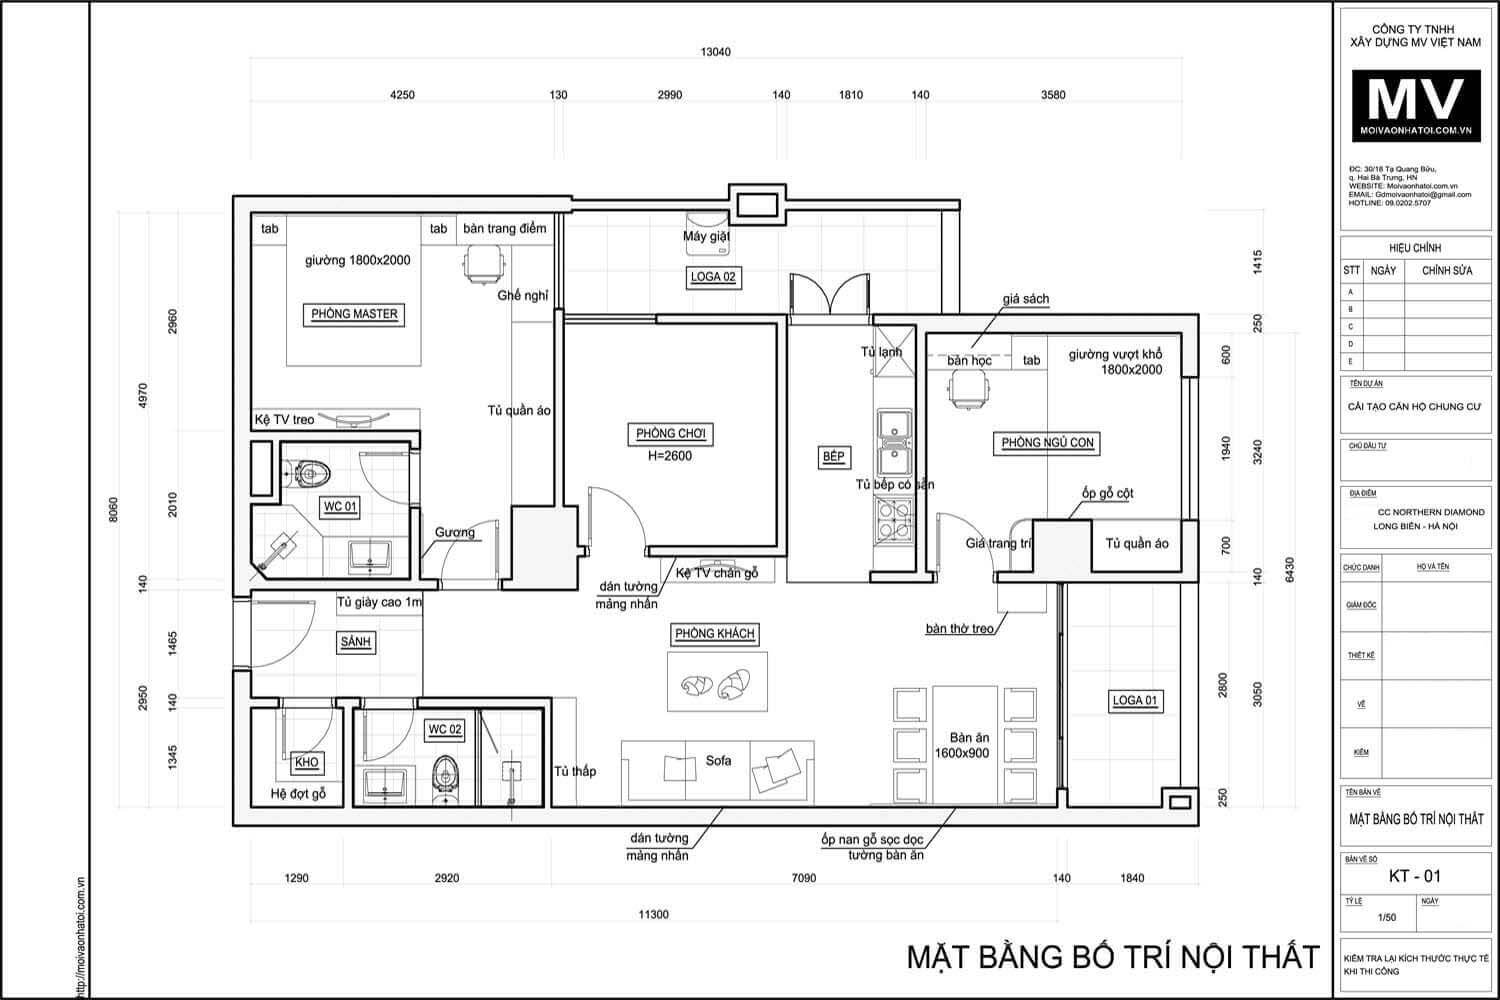 The design ground of Northern Diamond Long Bien apartment apartment 110m2